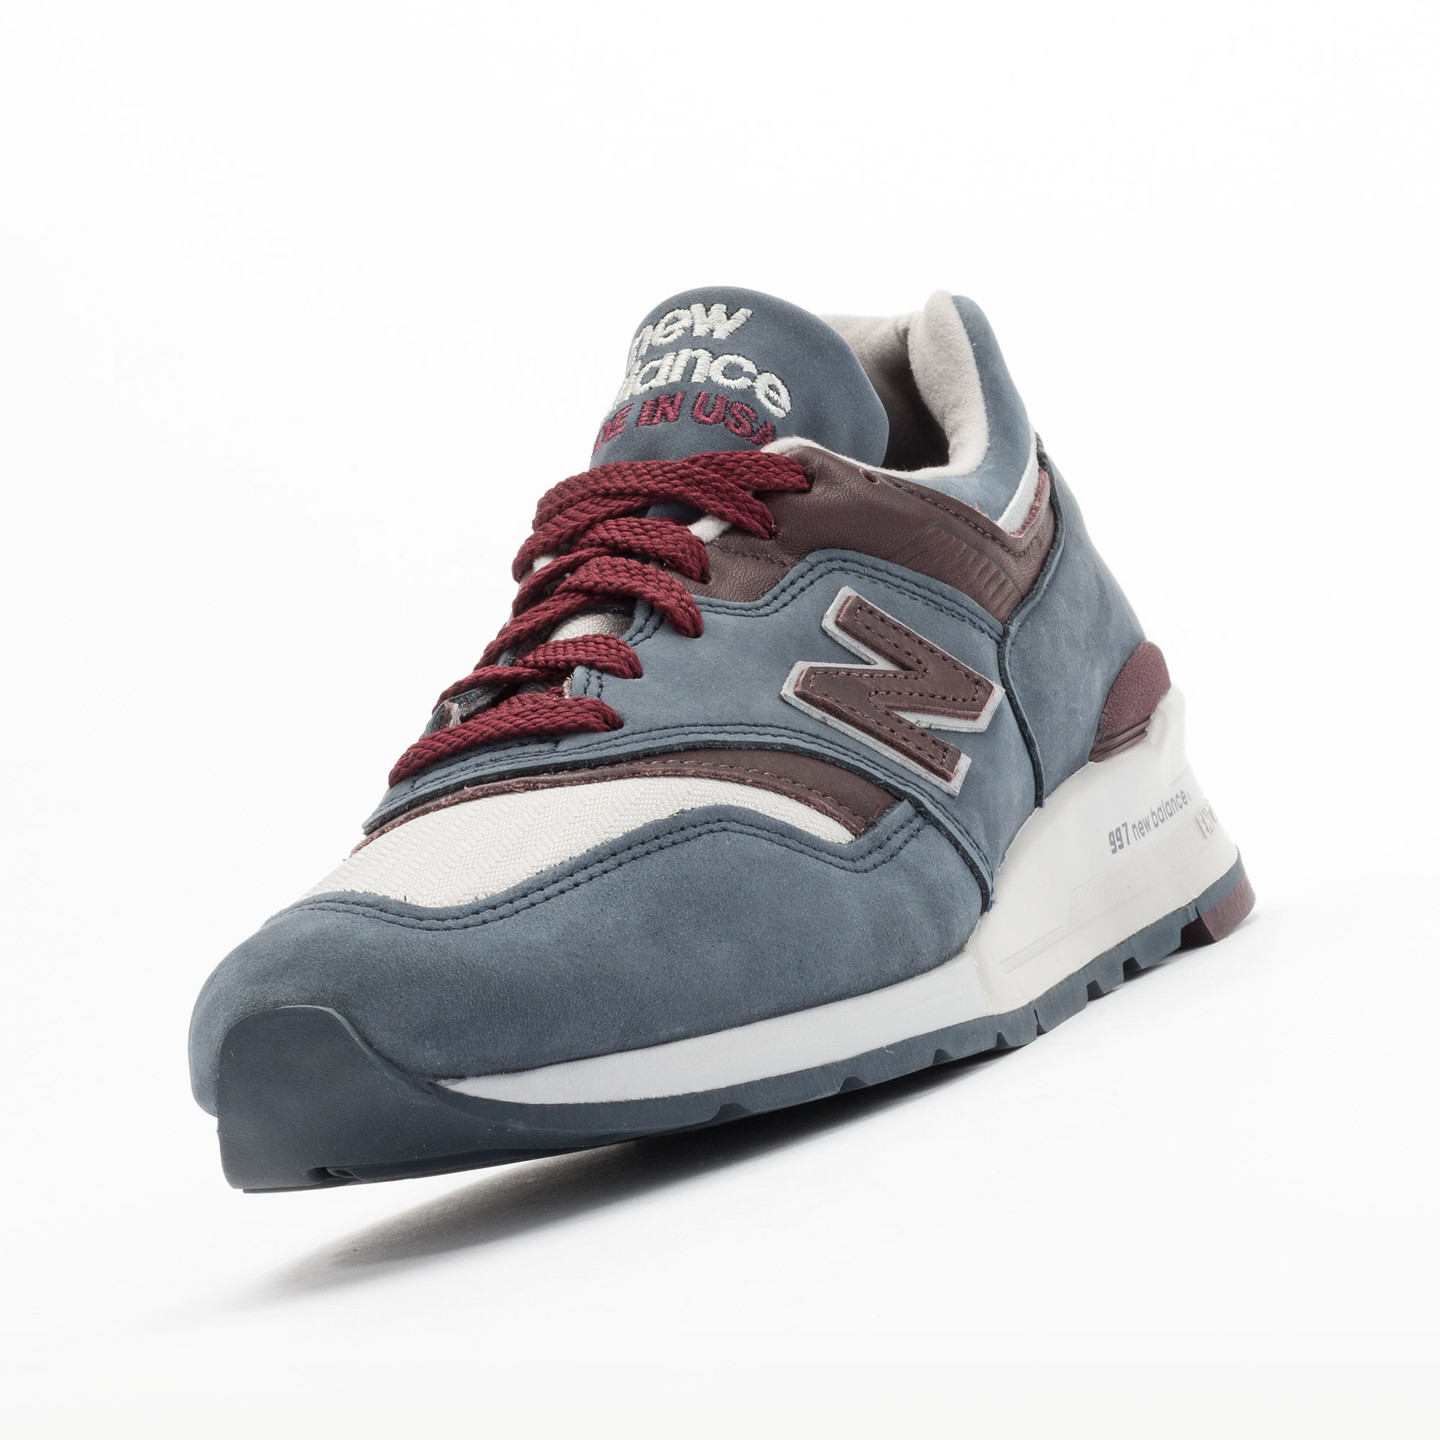 New Balance M997 DGM - Made in USA Grey Steel / Burgundy M997DGM-44